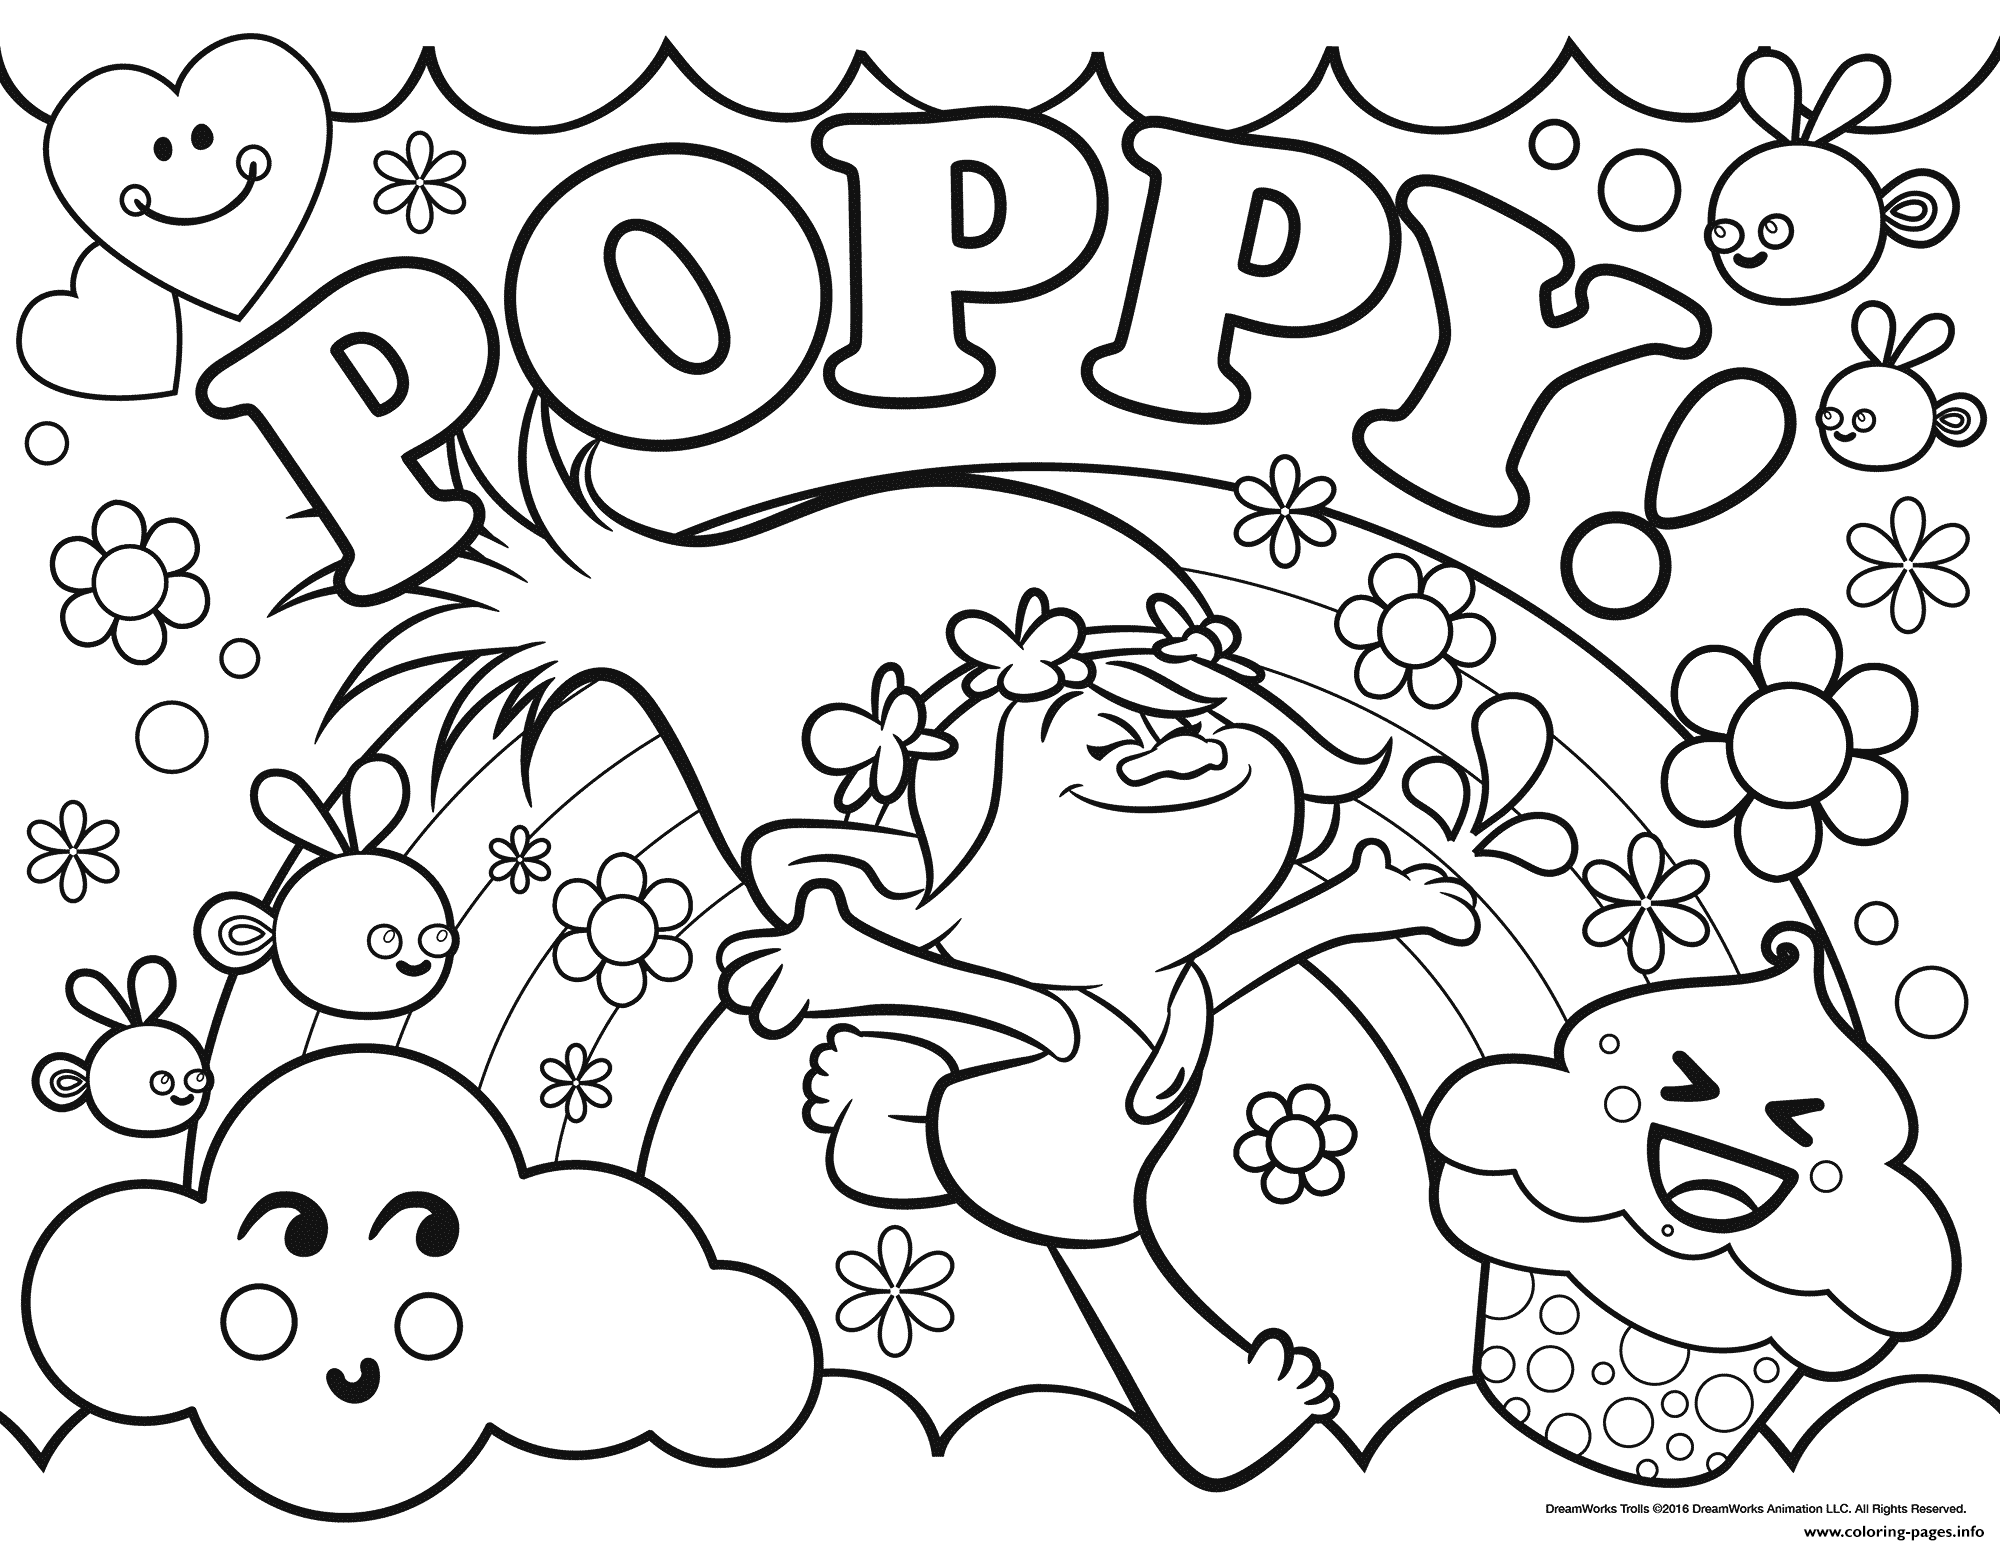 Print trolls poppy coloring pages color time in 2018 for Poppy coloring page